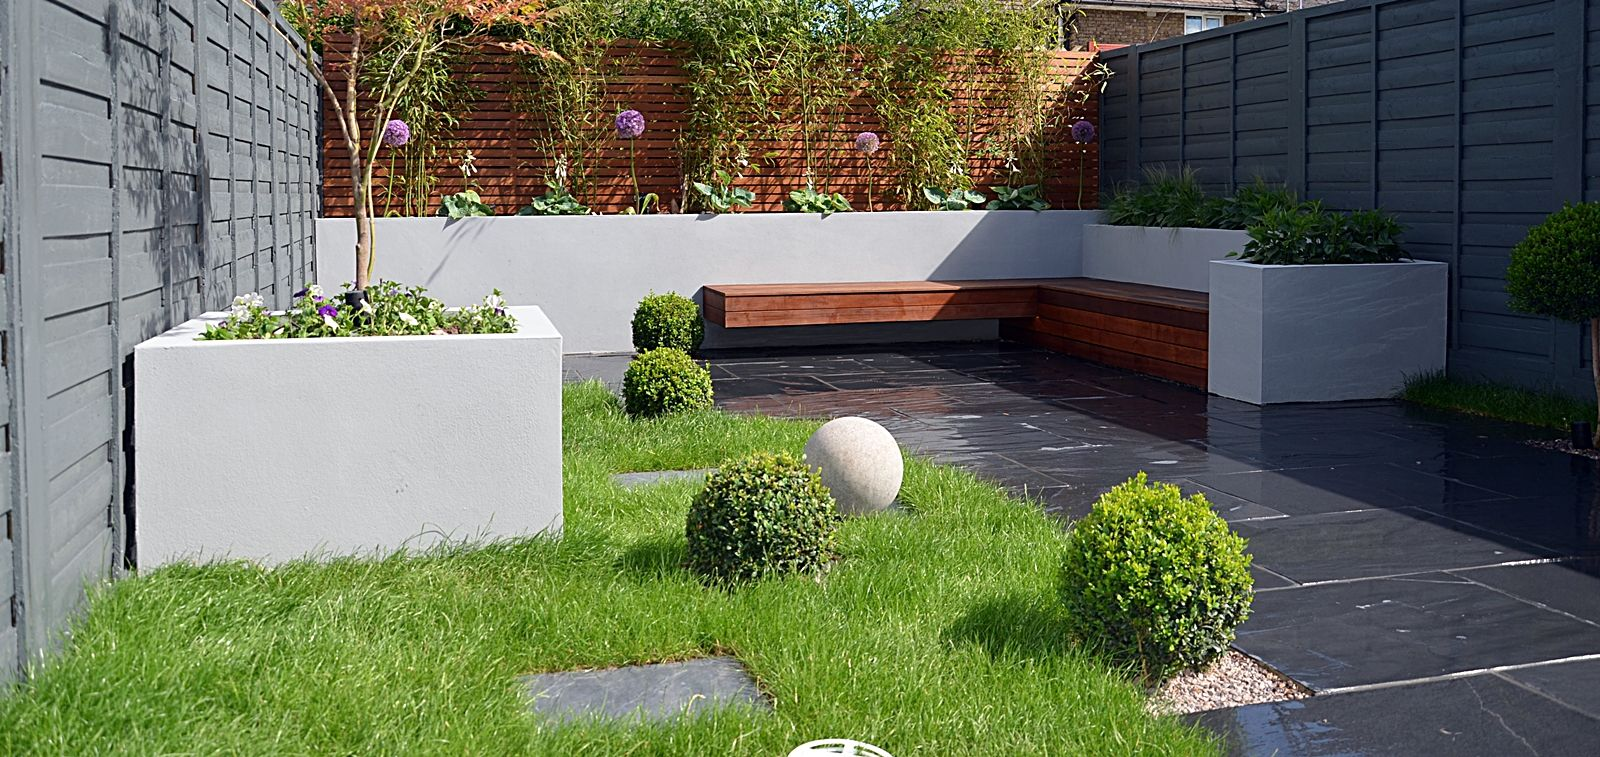 Rendered Block Walls Slate Paving Designer Lawn Modern Planting London Garden Design